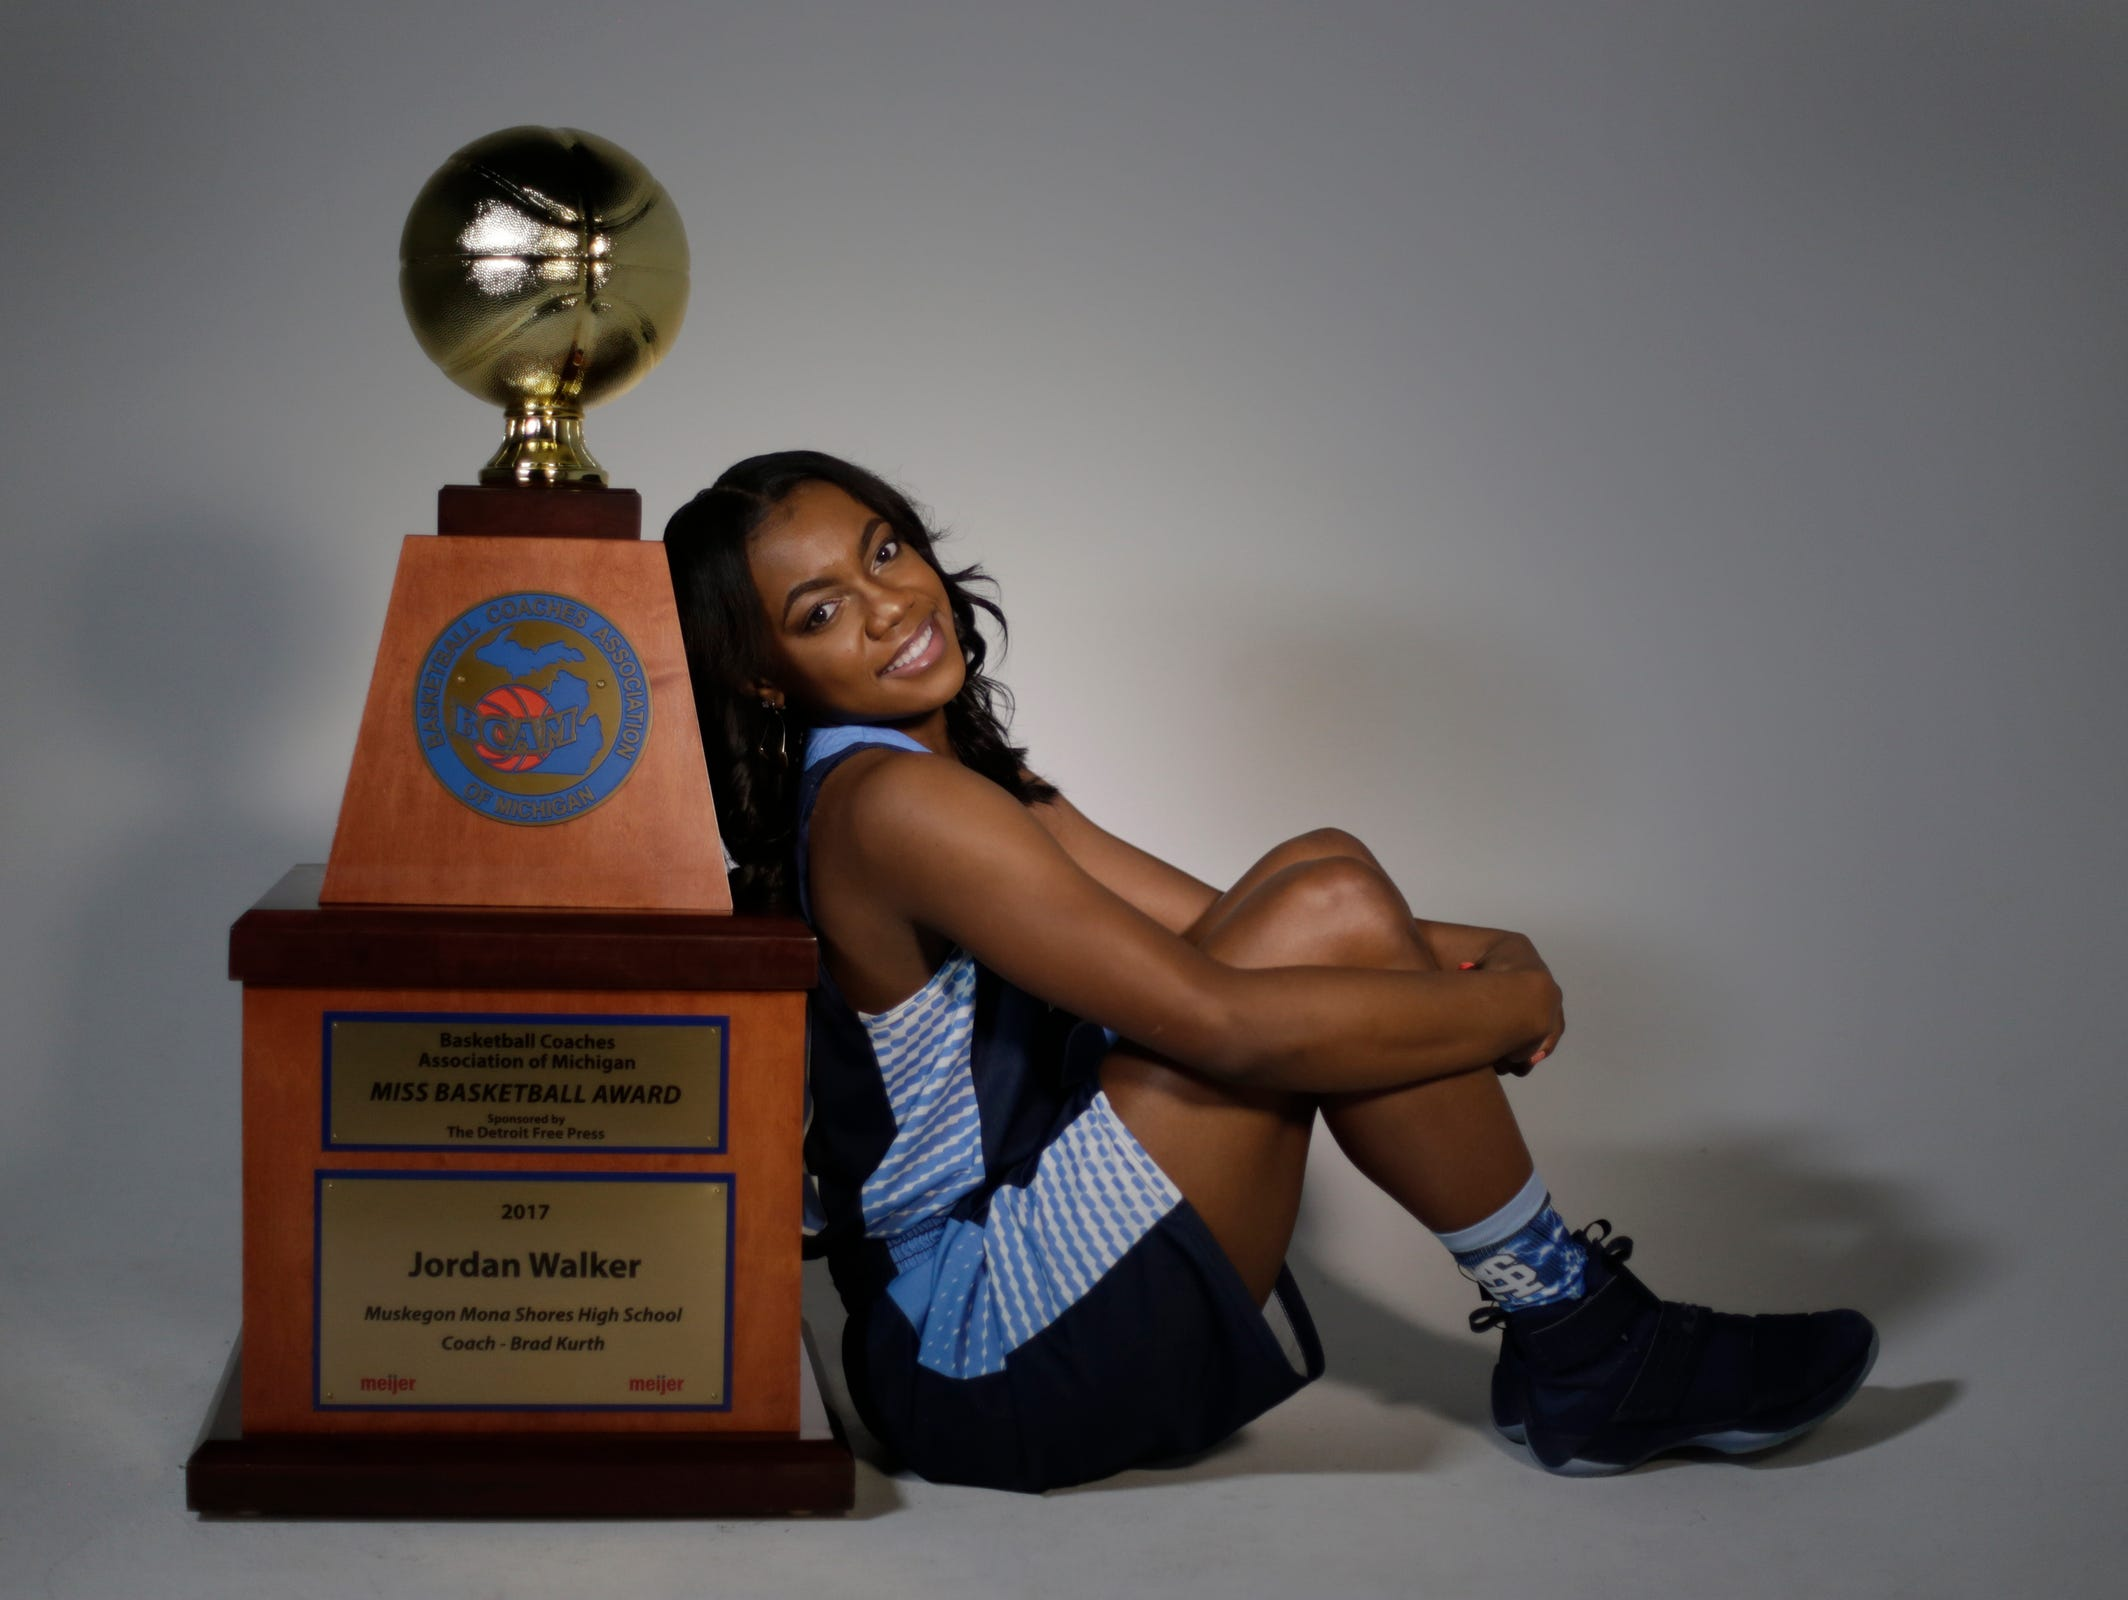 Jordan Walker from Mona Shores High School in Muskegon, was named the 2017 Miss Basketball Monday March 13, 2017. She poses with her trophy at the Detroit Free Press.